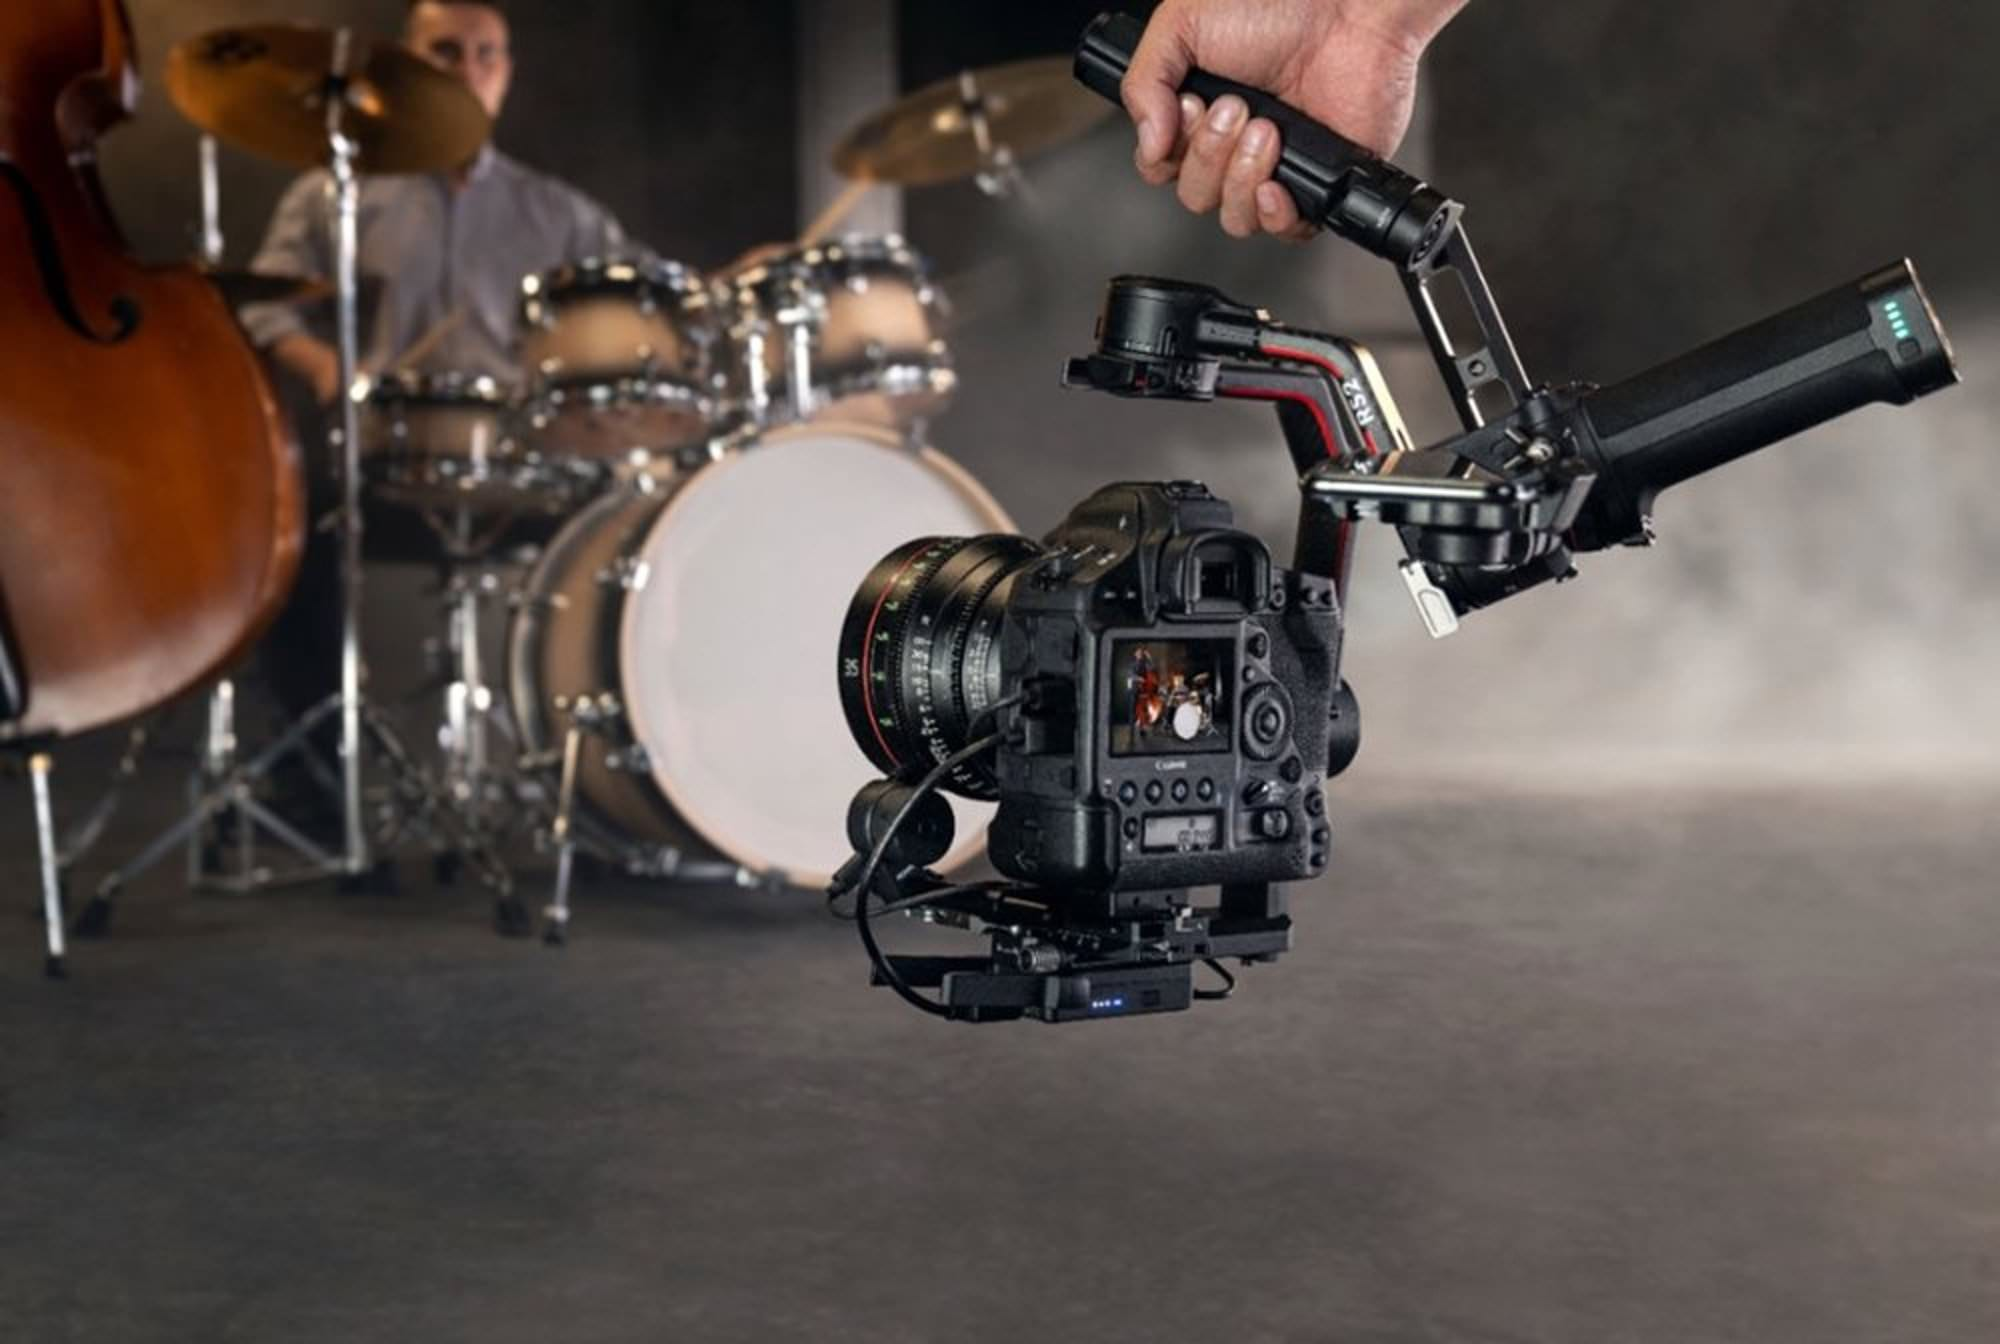 DJI Ronin RS2 photos and price revealed by Best Buy